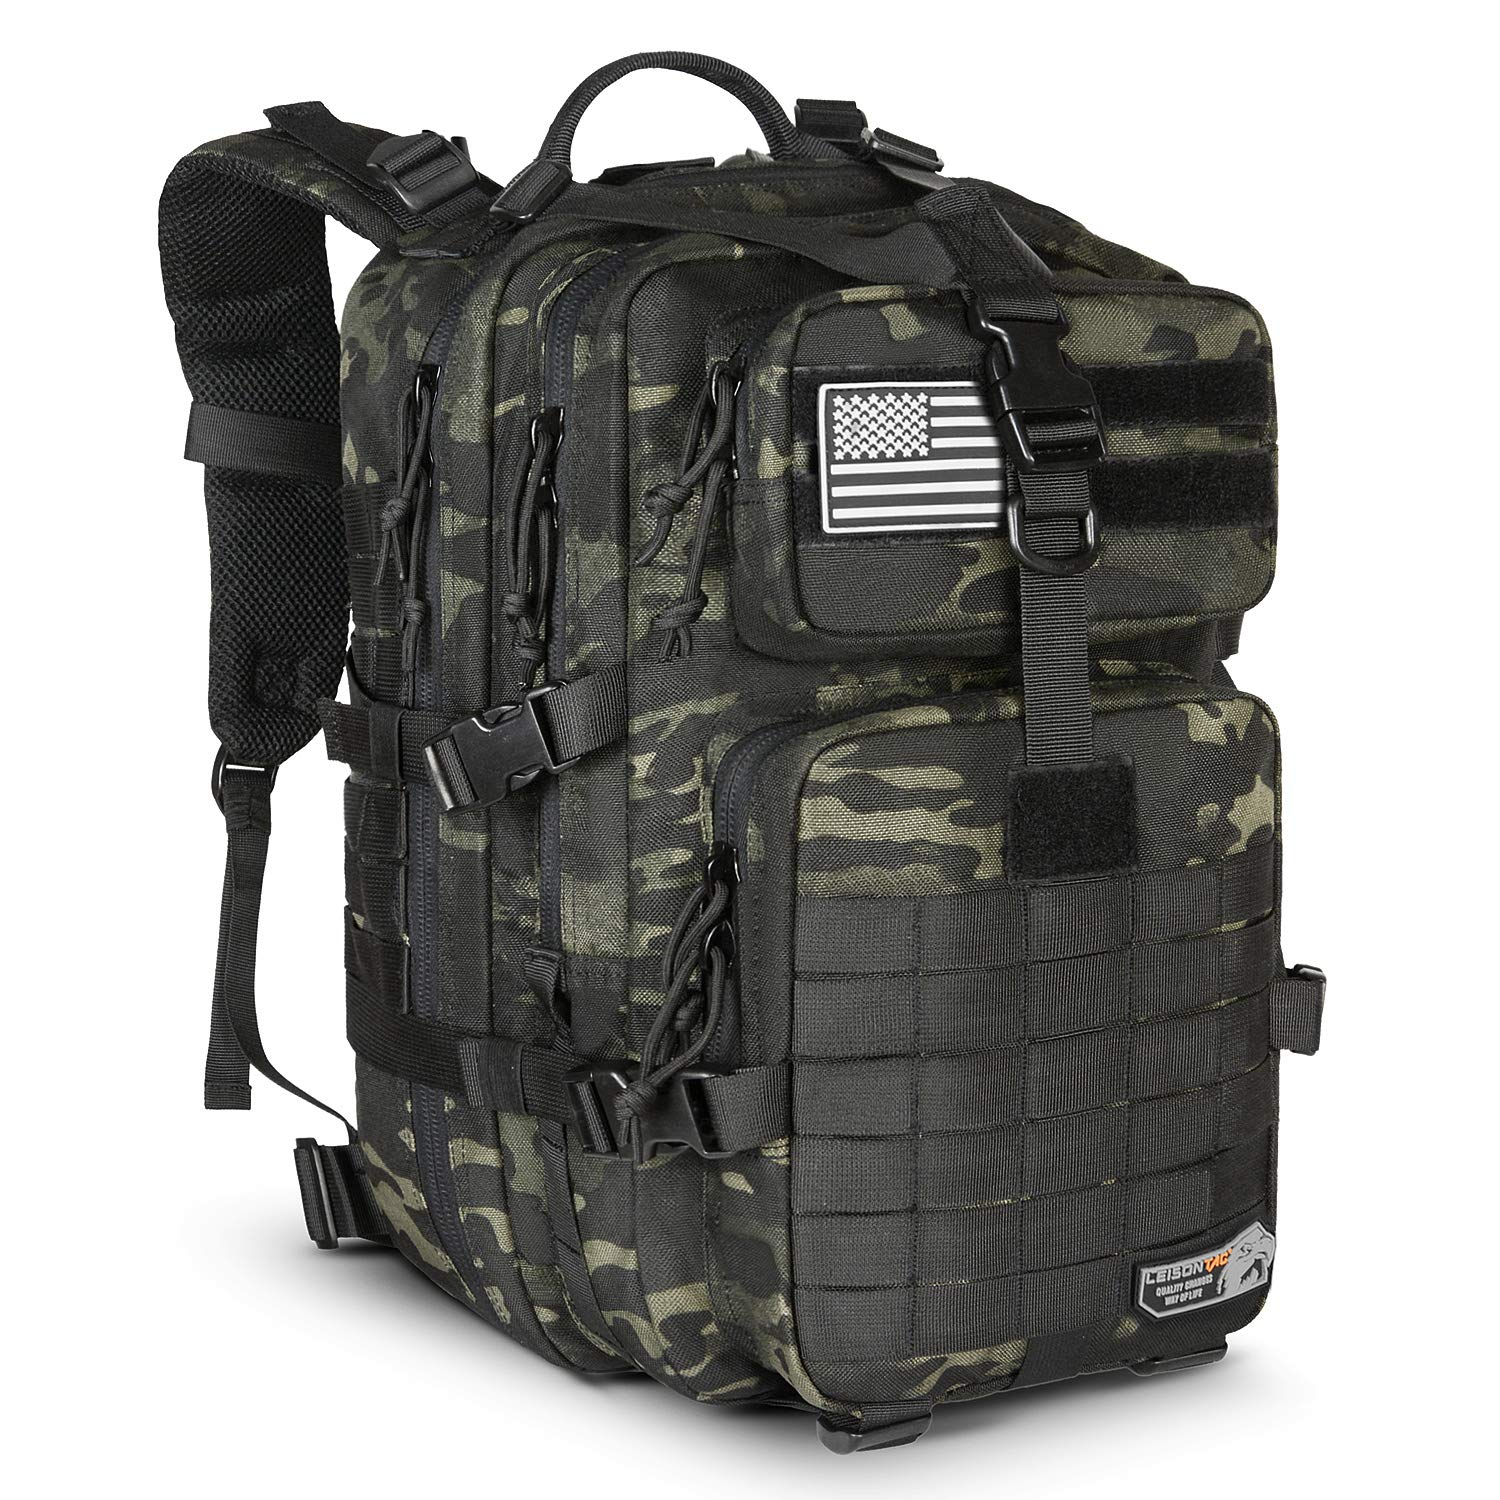 LeisonTac Tactical Backpack Military ISO Standard for Hunting Hiking Travel & Camping   Heavy Duty Nylon Stitching Water Resistant Small Rucksack with Hydration Bladder Compartment (Black Multicam)